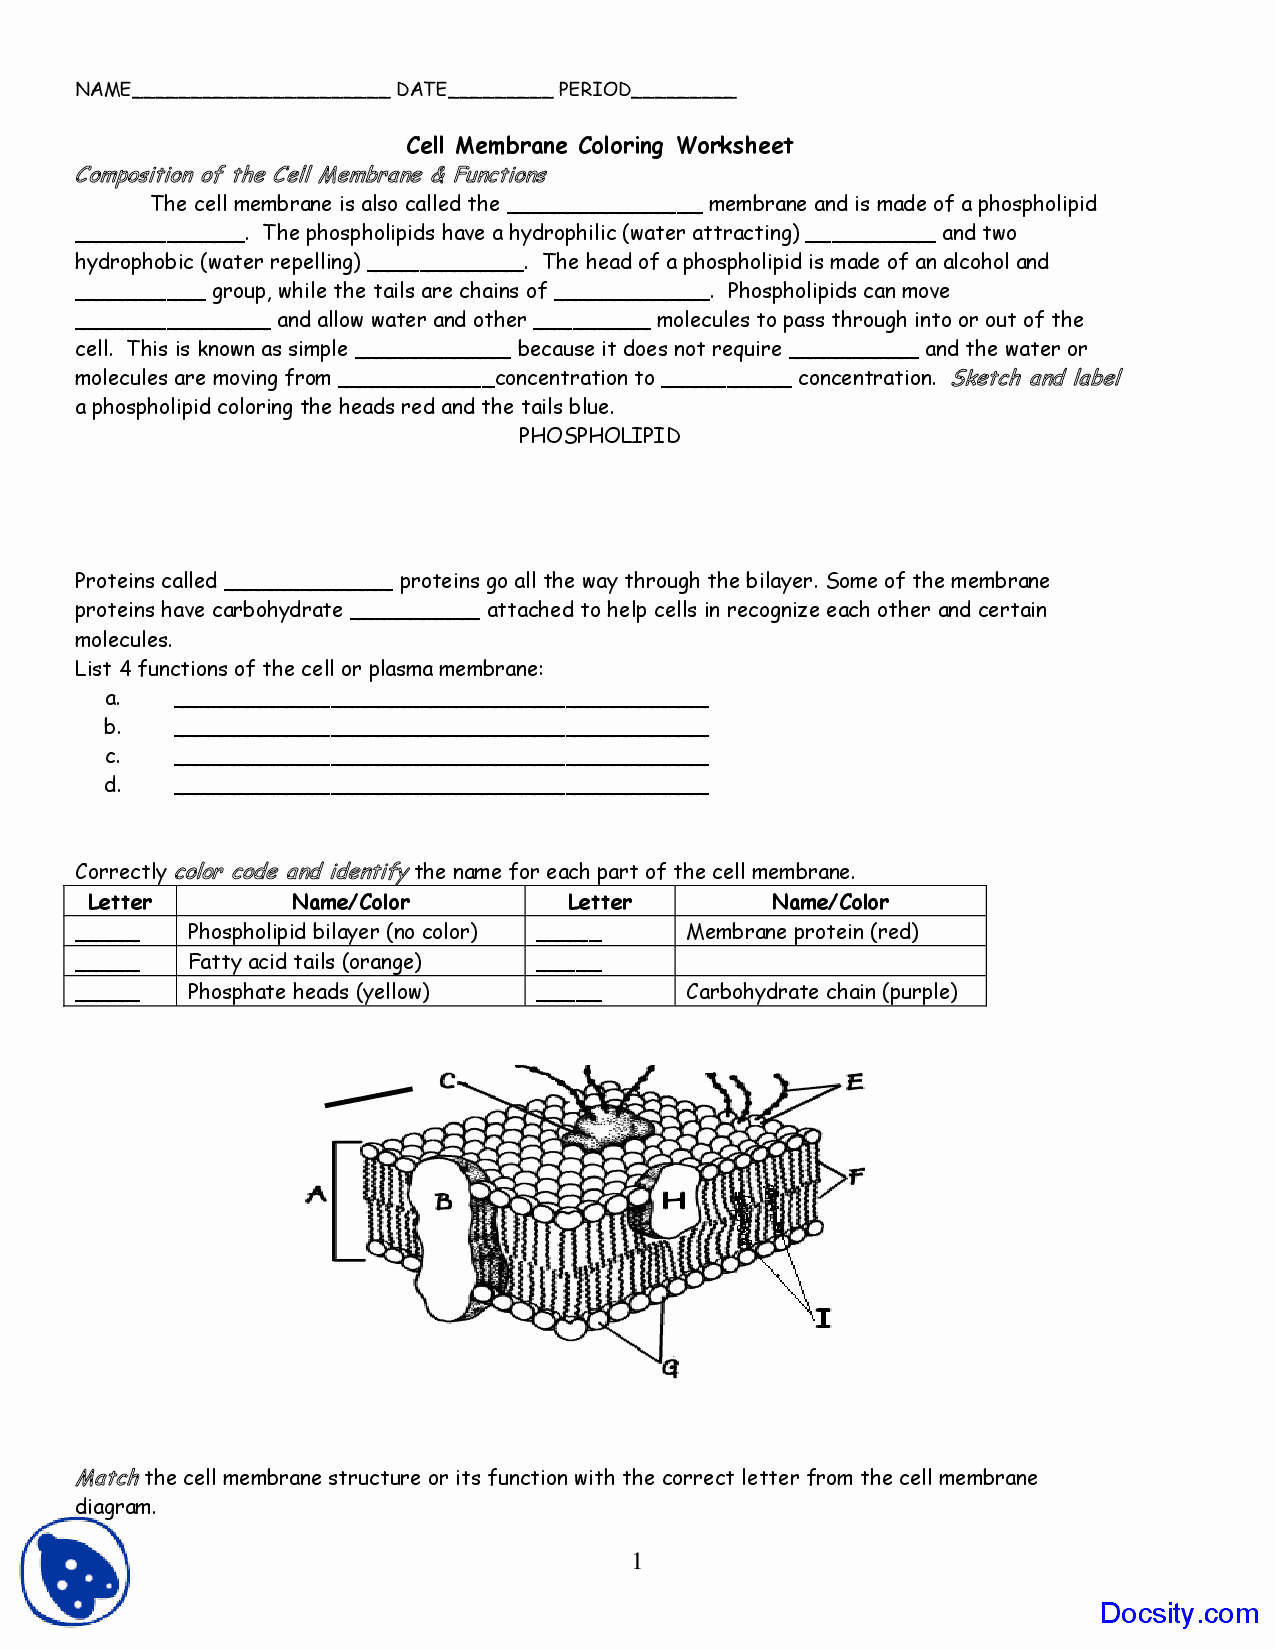 Cell Membrane Coloring Worksheet Unique Cell Membrane Coloring Application Of Biology